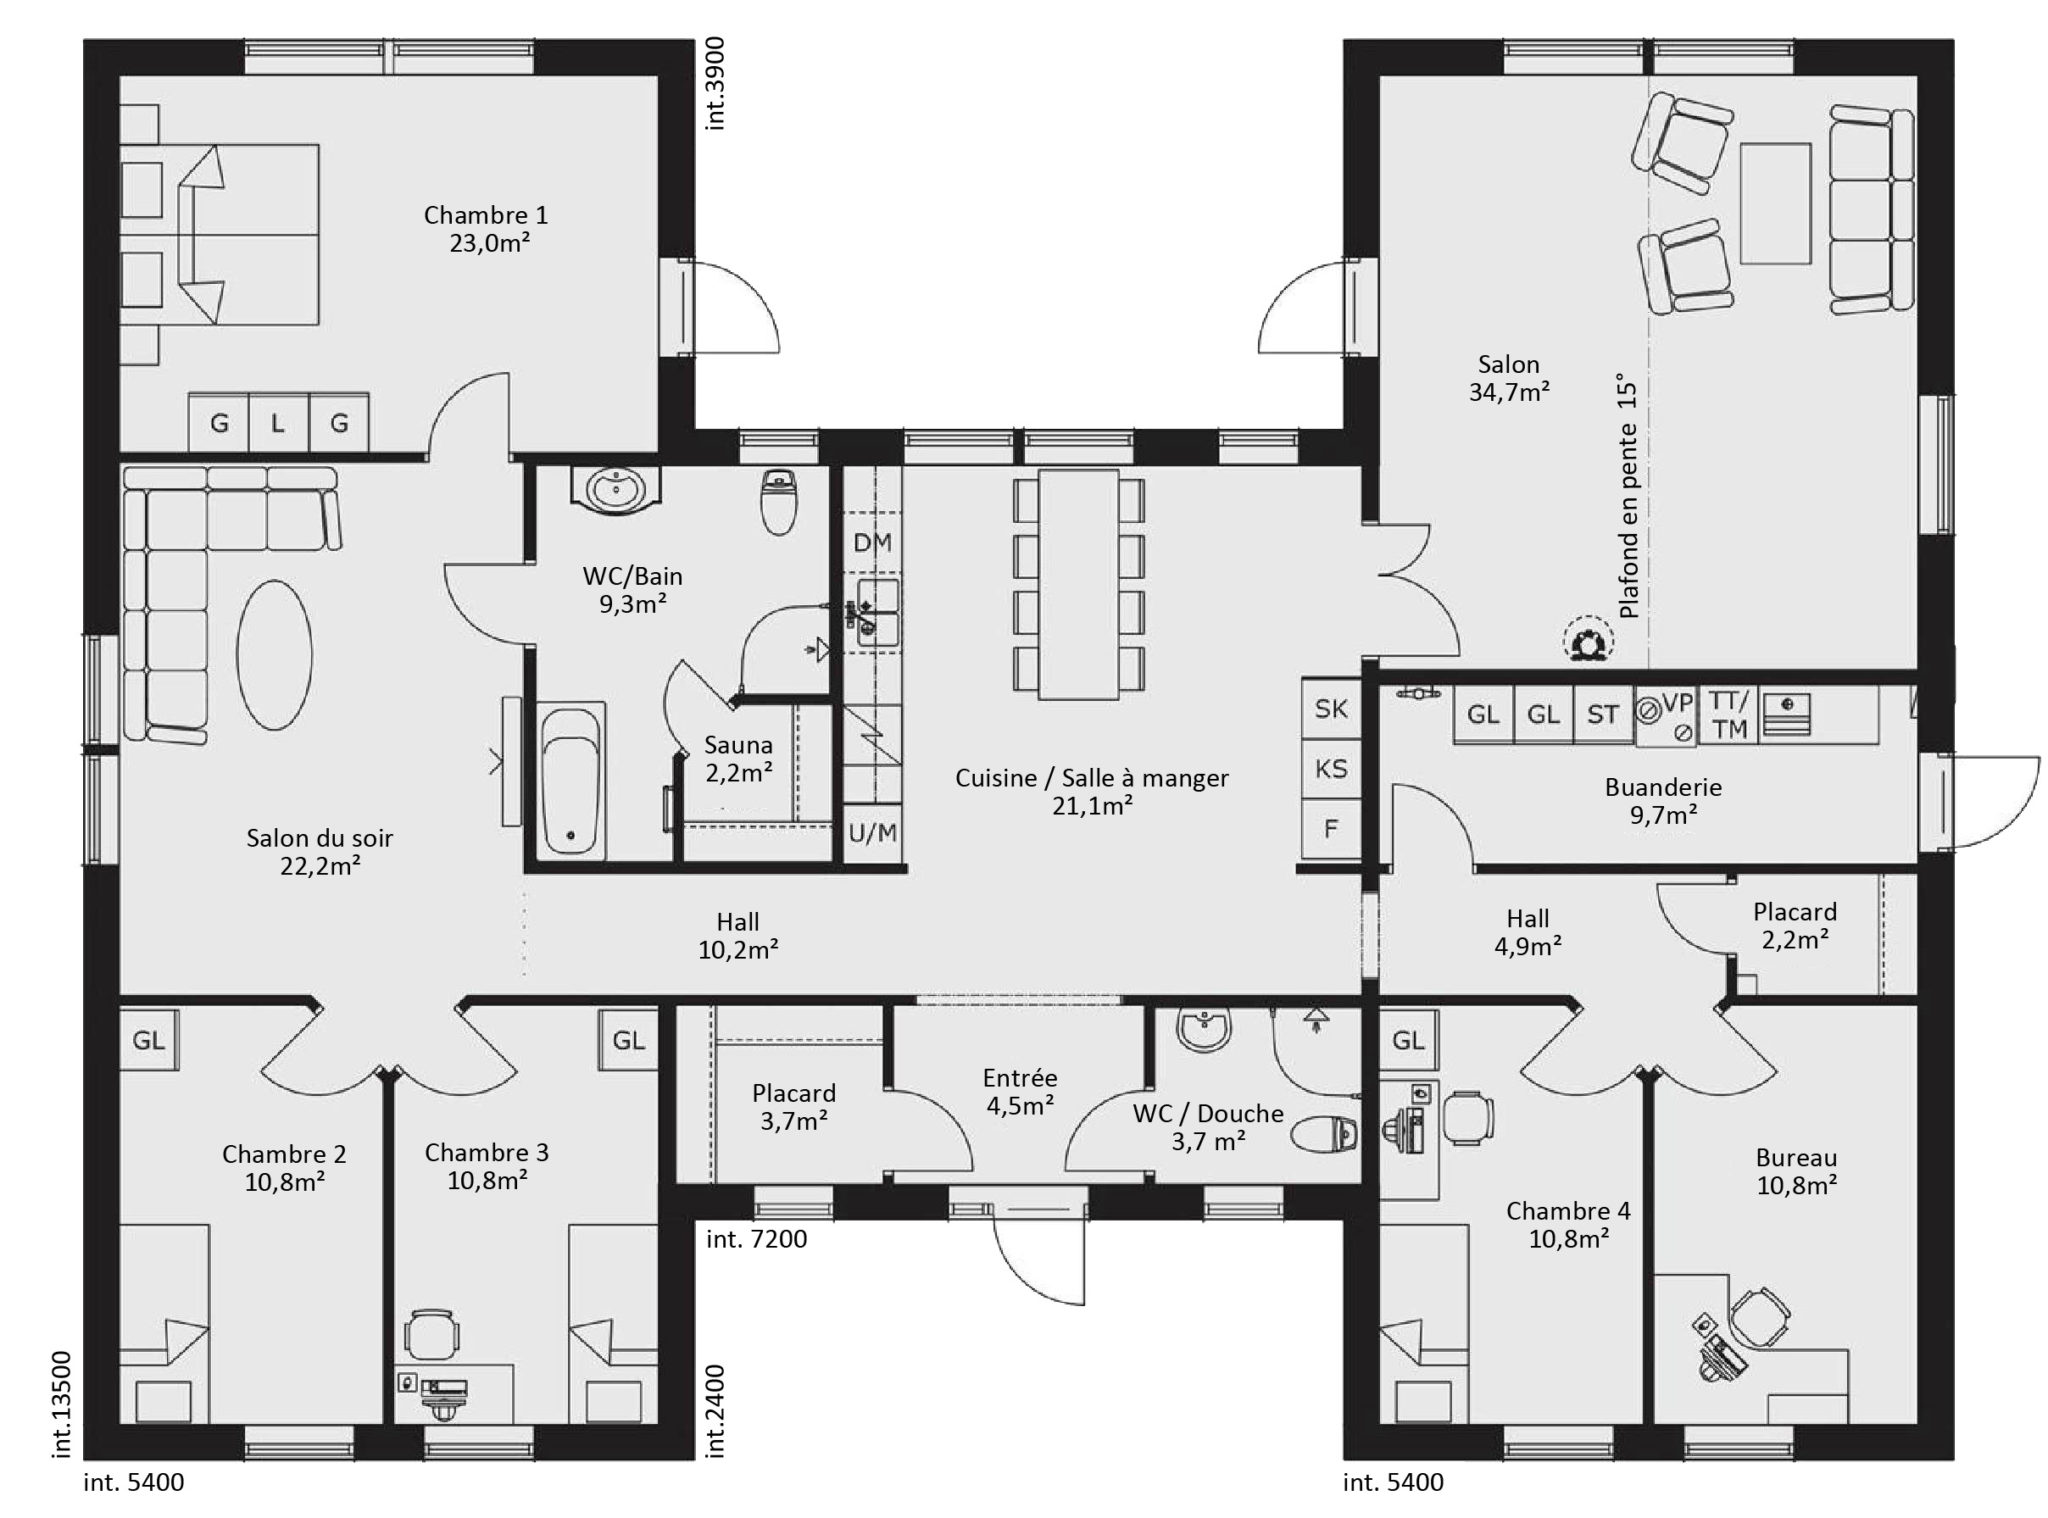 Architecte maison auteur plans maisons page 3 sur 6 for Plan maison contemporaine 3 chambres